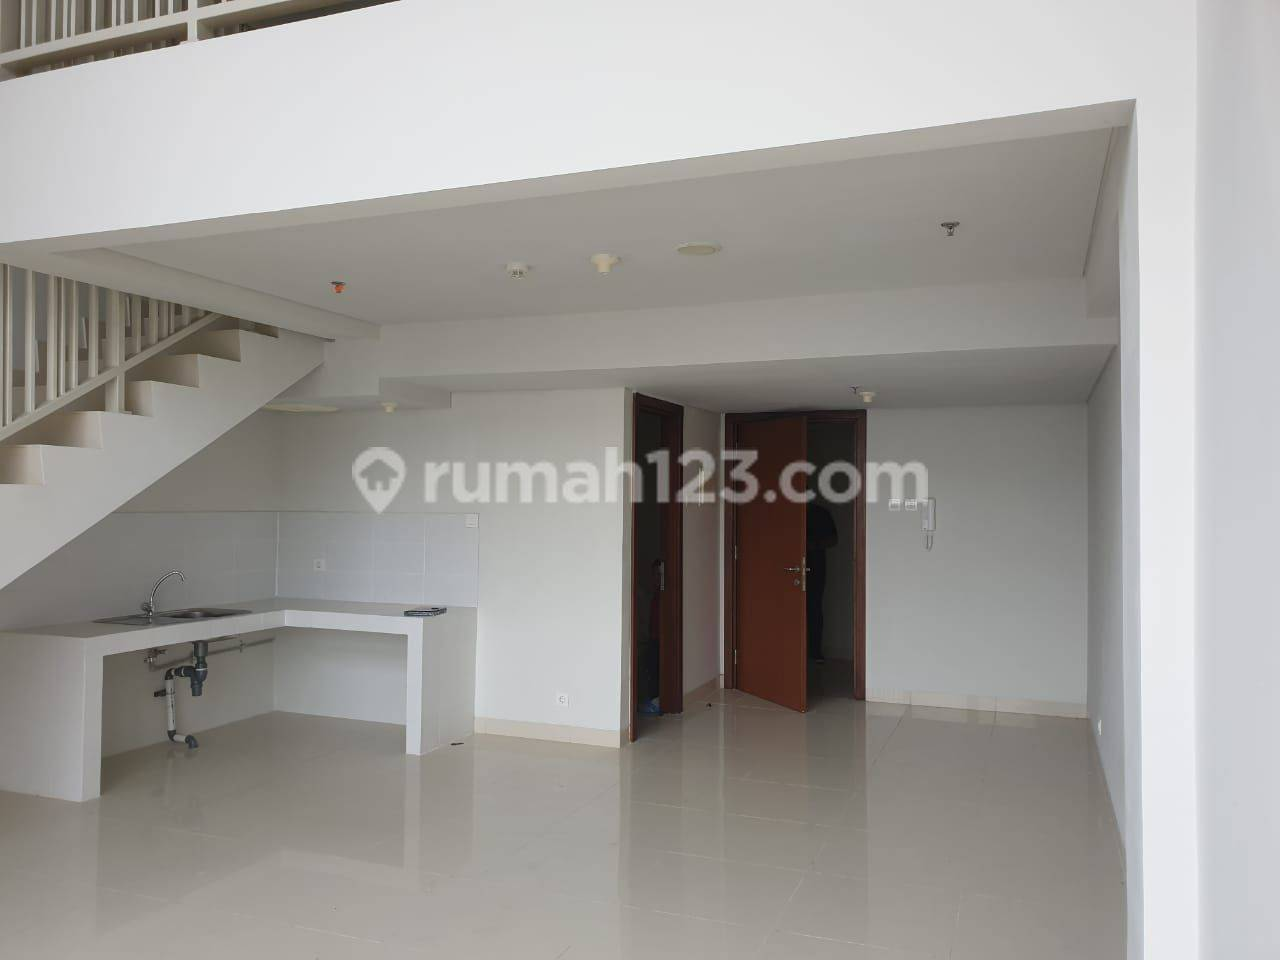 Office Space Soho Pancoran Jaksel Tower Noble  Unit 18  Type Manhatan  1BR Unfurnish (Fay)